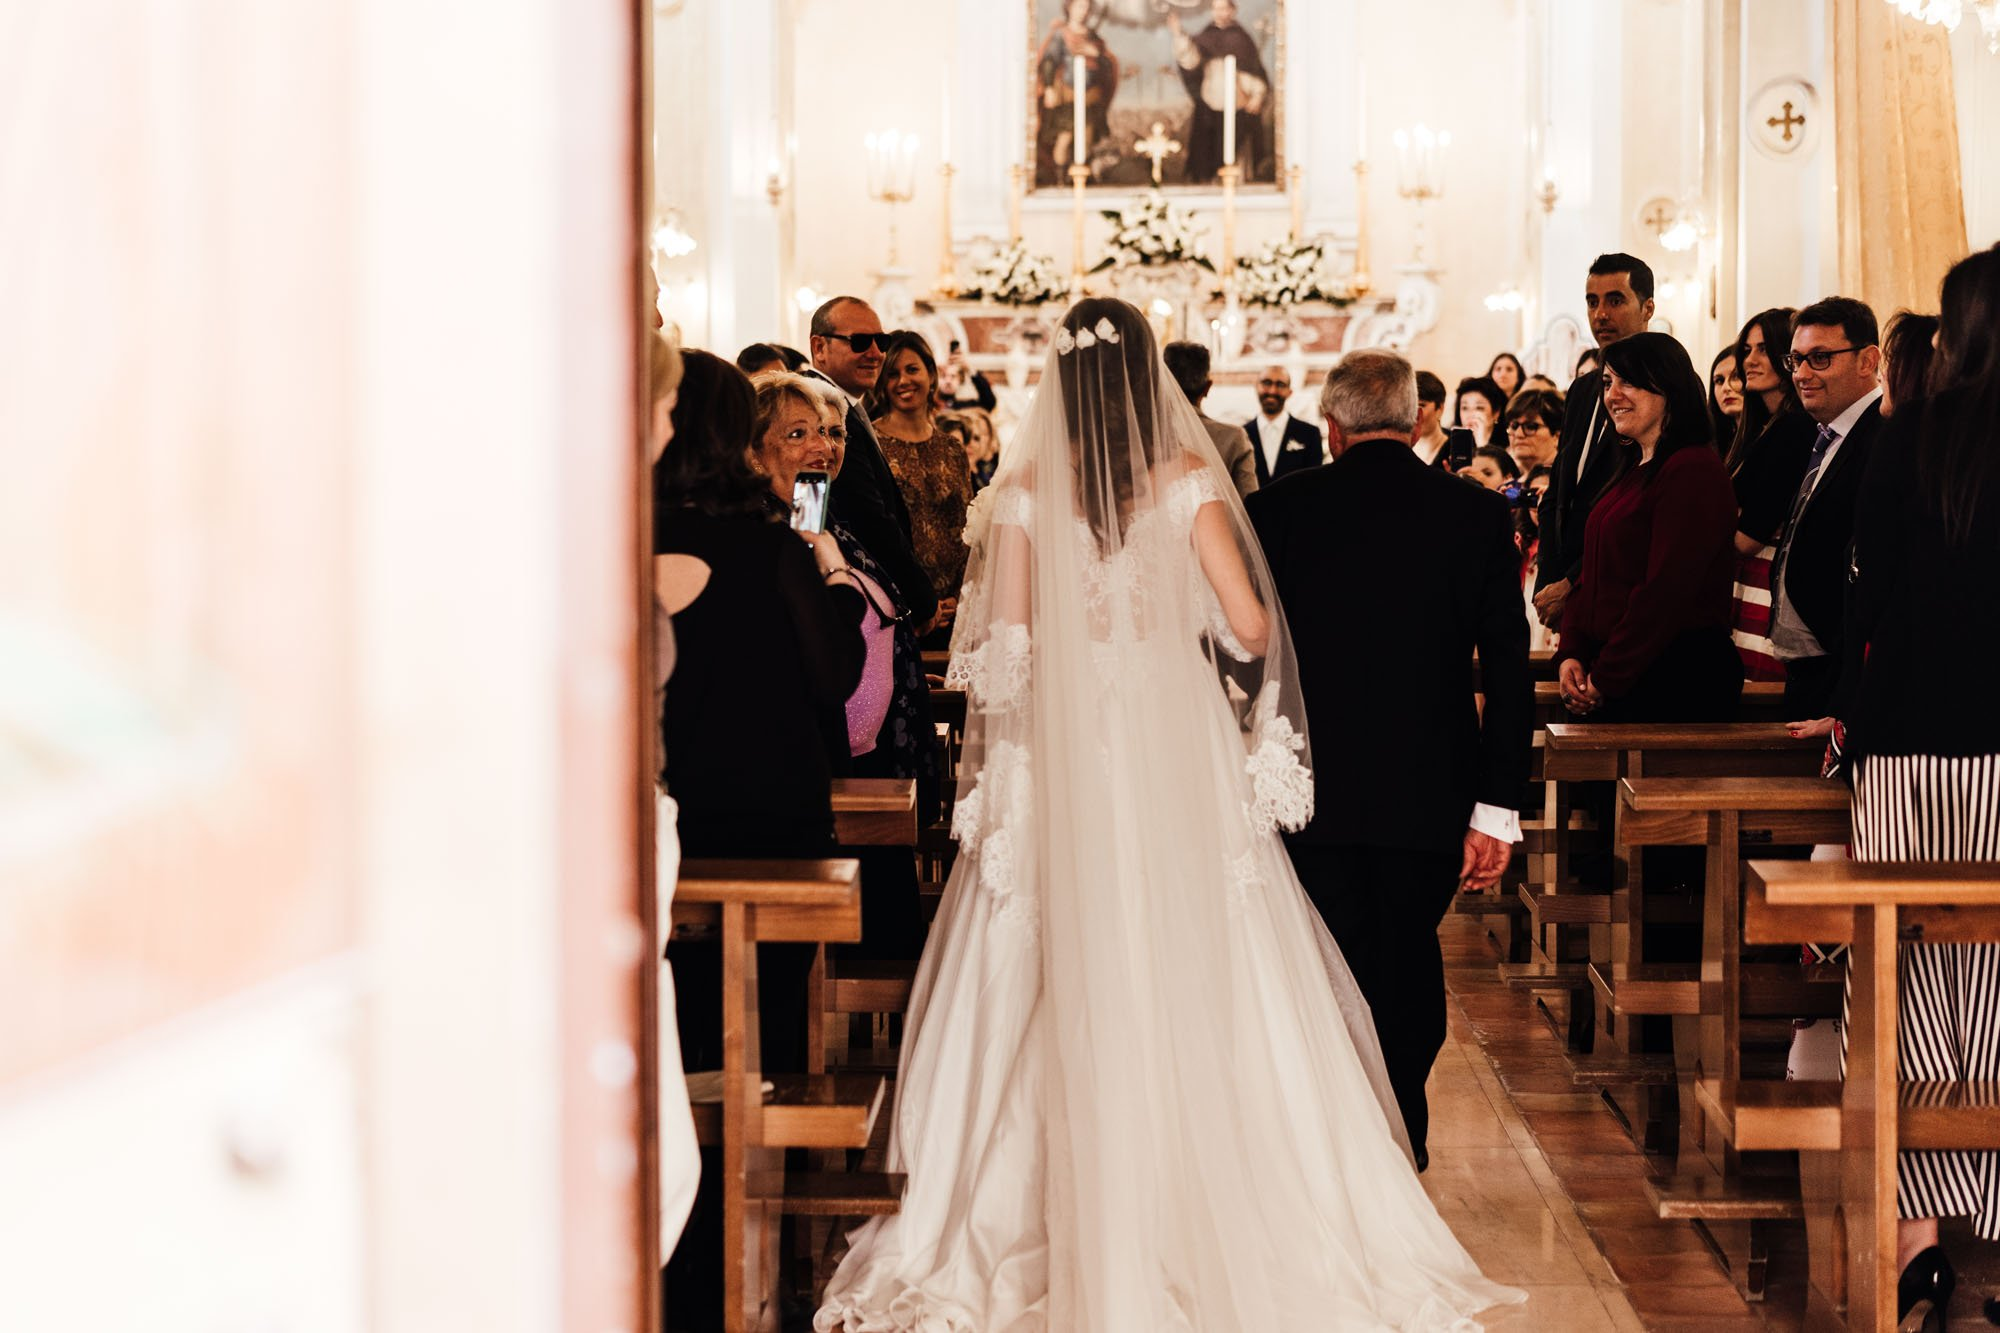 wedding-in-italy-mary-mimmo-21